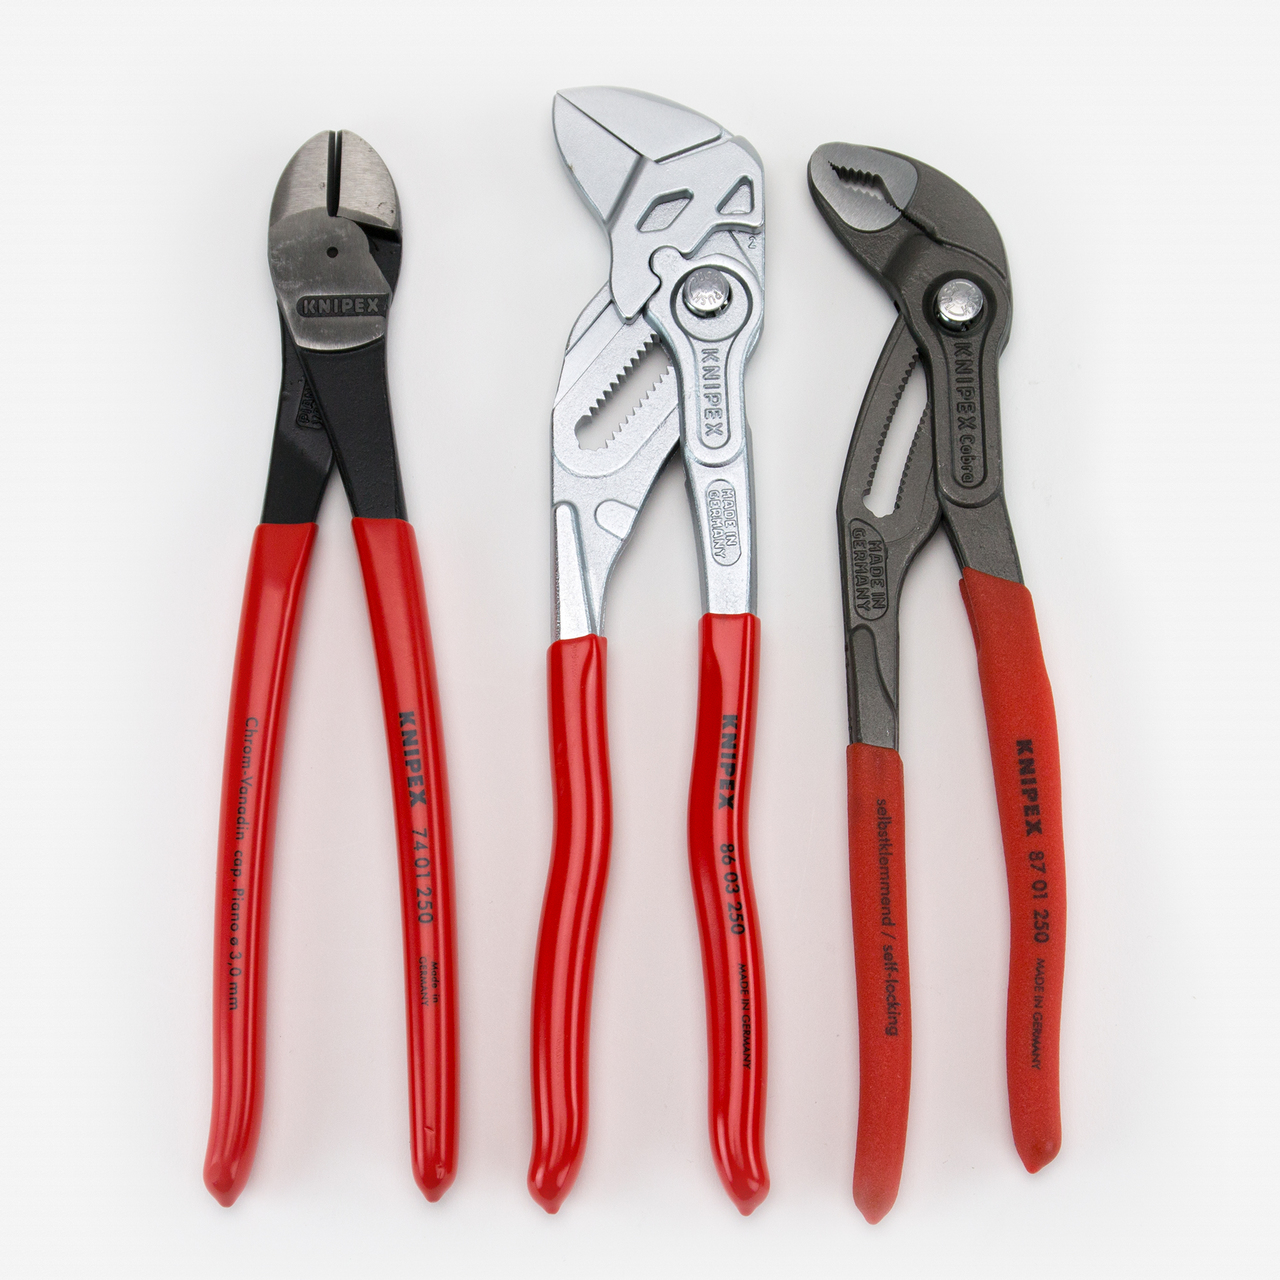 "Knipex 9K-00-80-117-US 3 Piece 10"" Pliers Set - KC Tool"